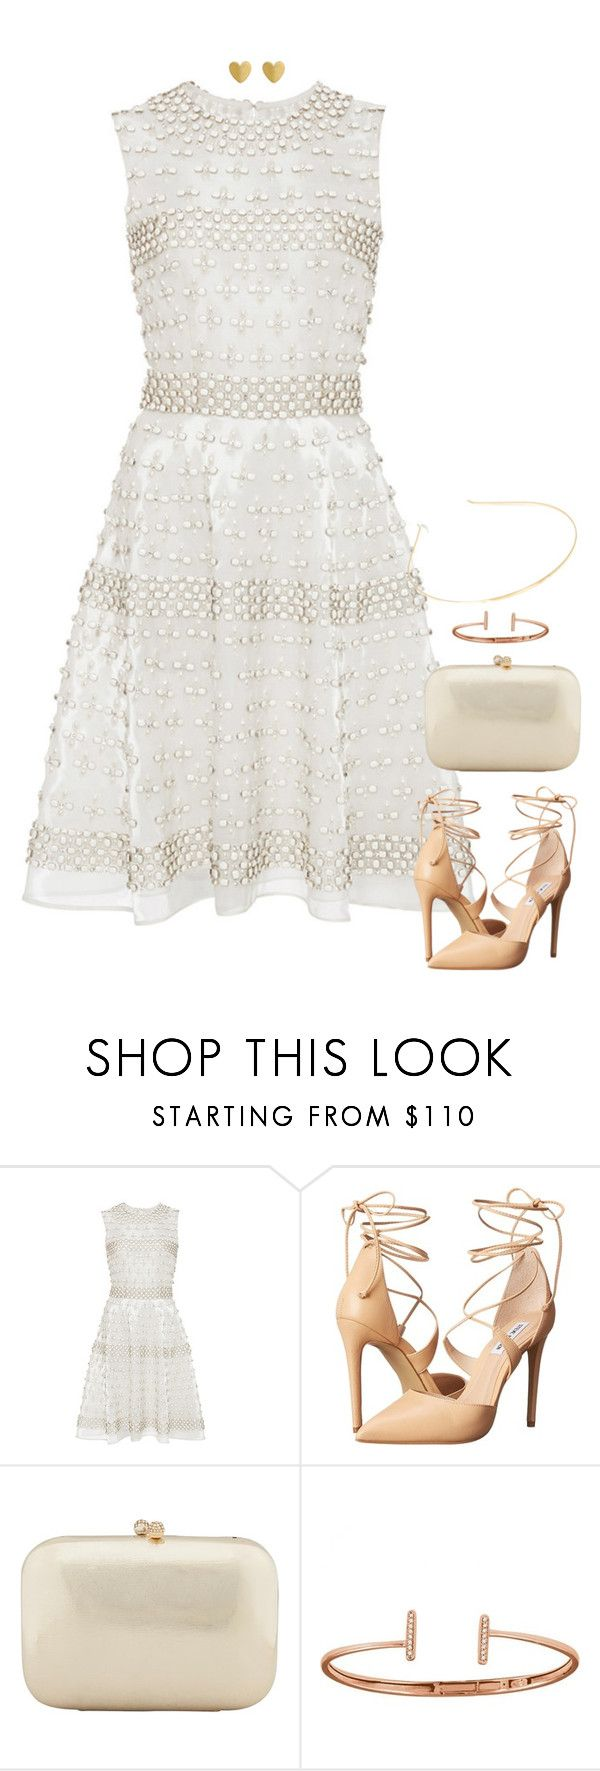 """Insensitive"" by xoxomuty ❤ liked on Polyvore featuring Naeem Khan, Steve Madden, Serpui and Allurez"